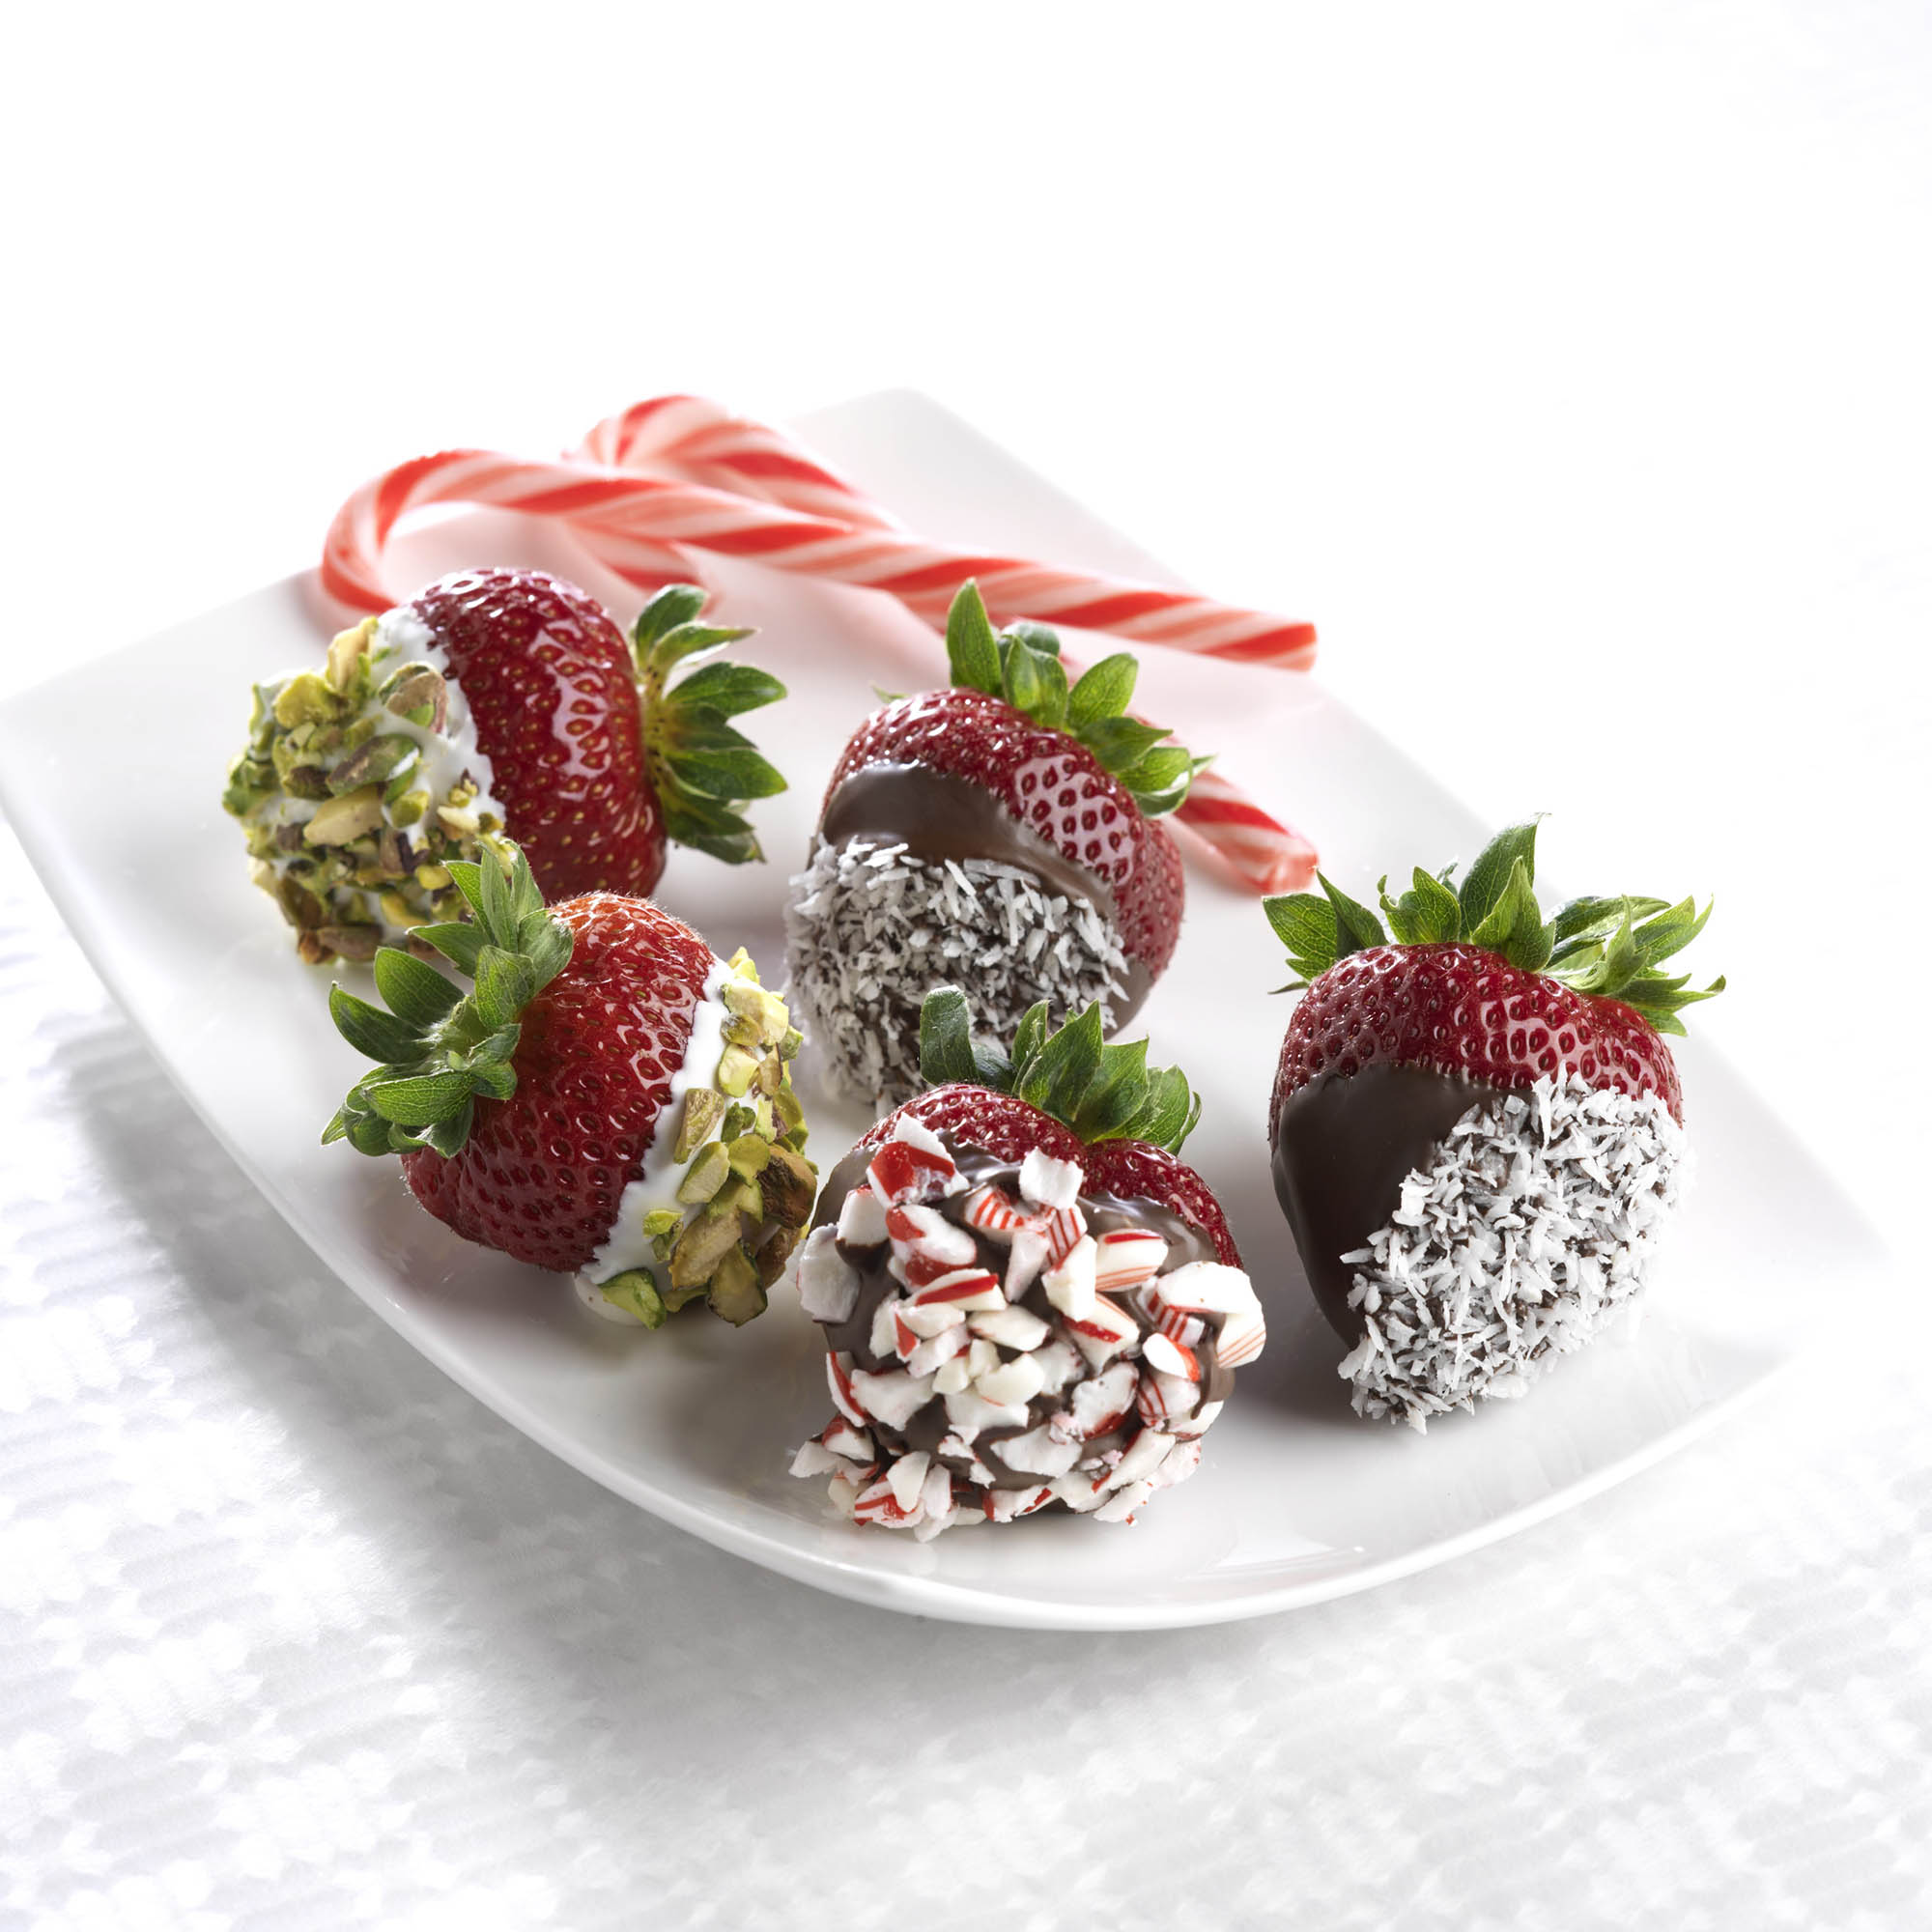 Godiva Chocolate Covered Strawberries Recipe